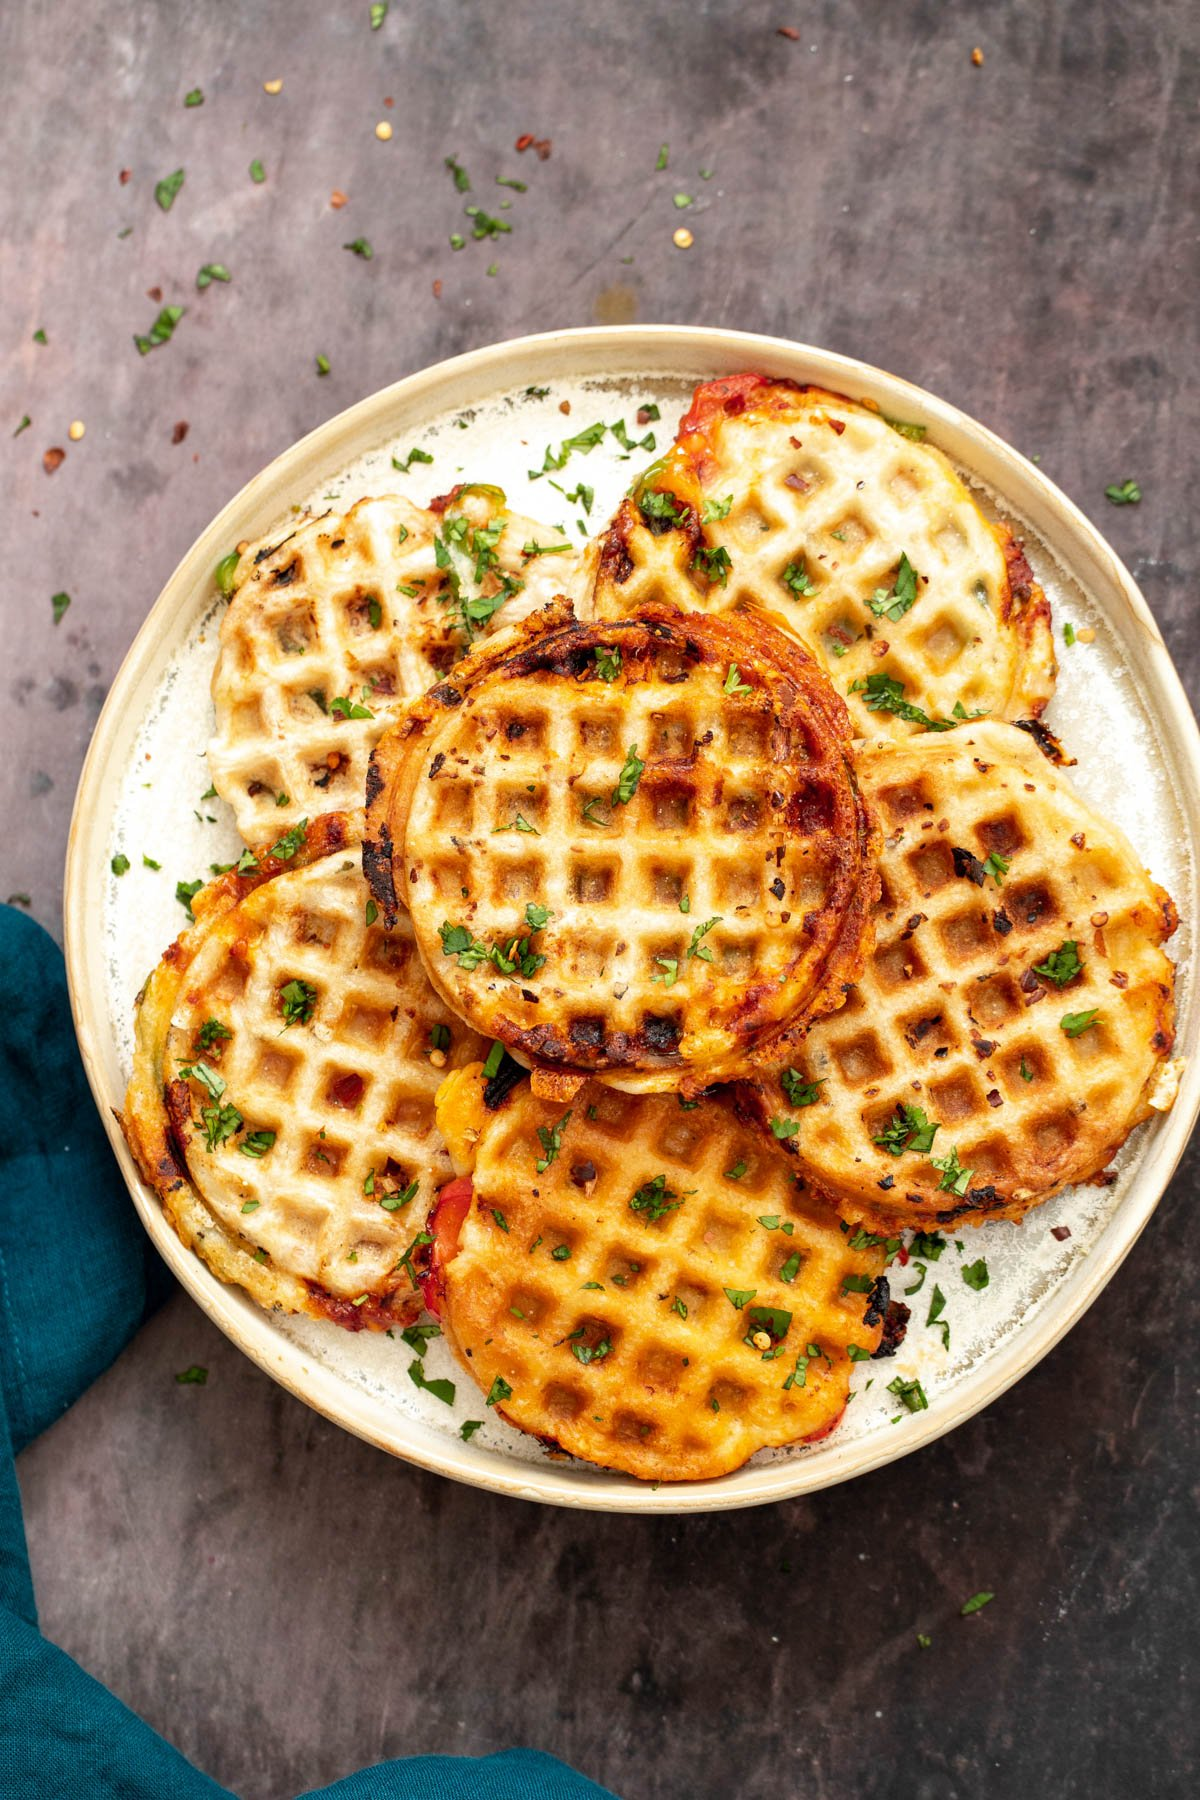 a plate with homemade vegan pizza waffles sprinkled with herbs